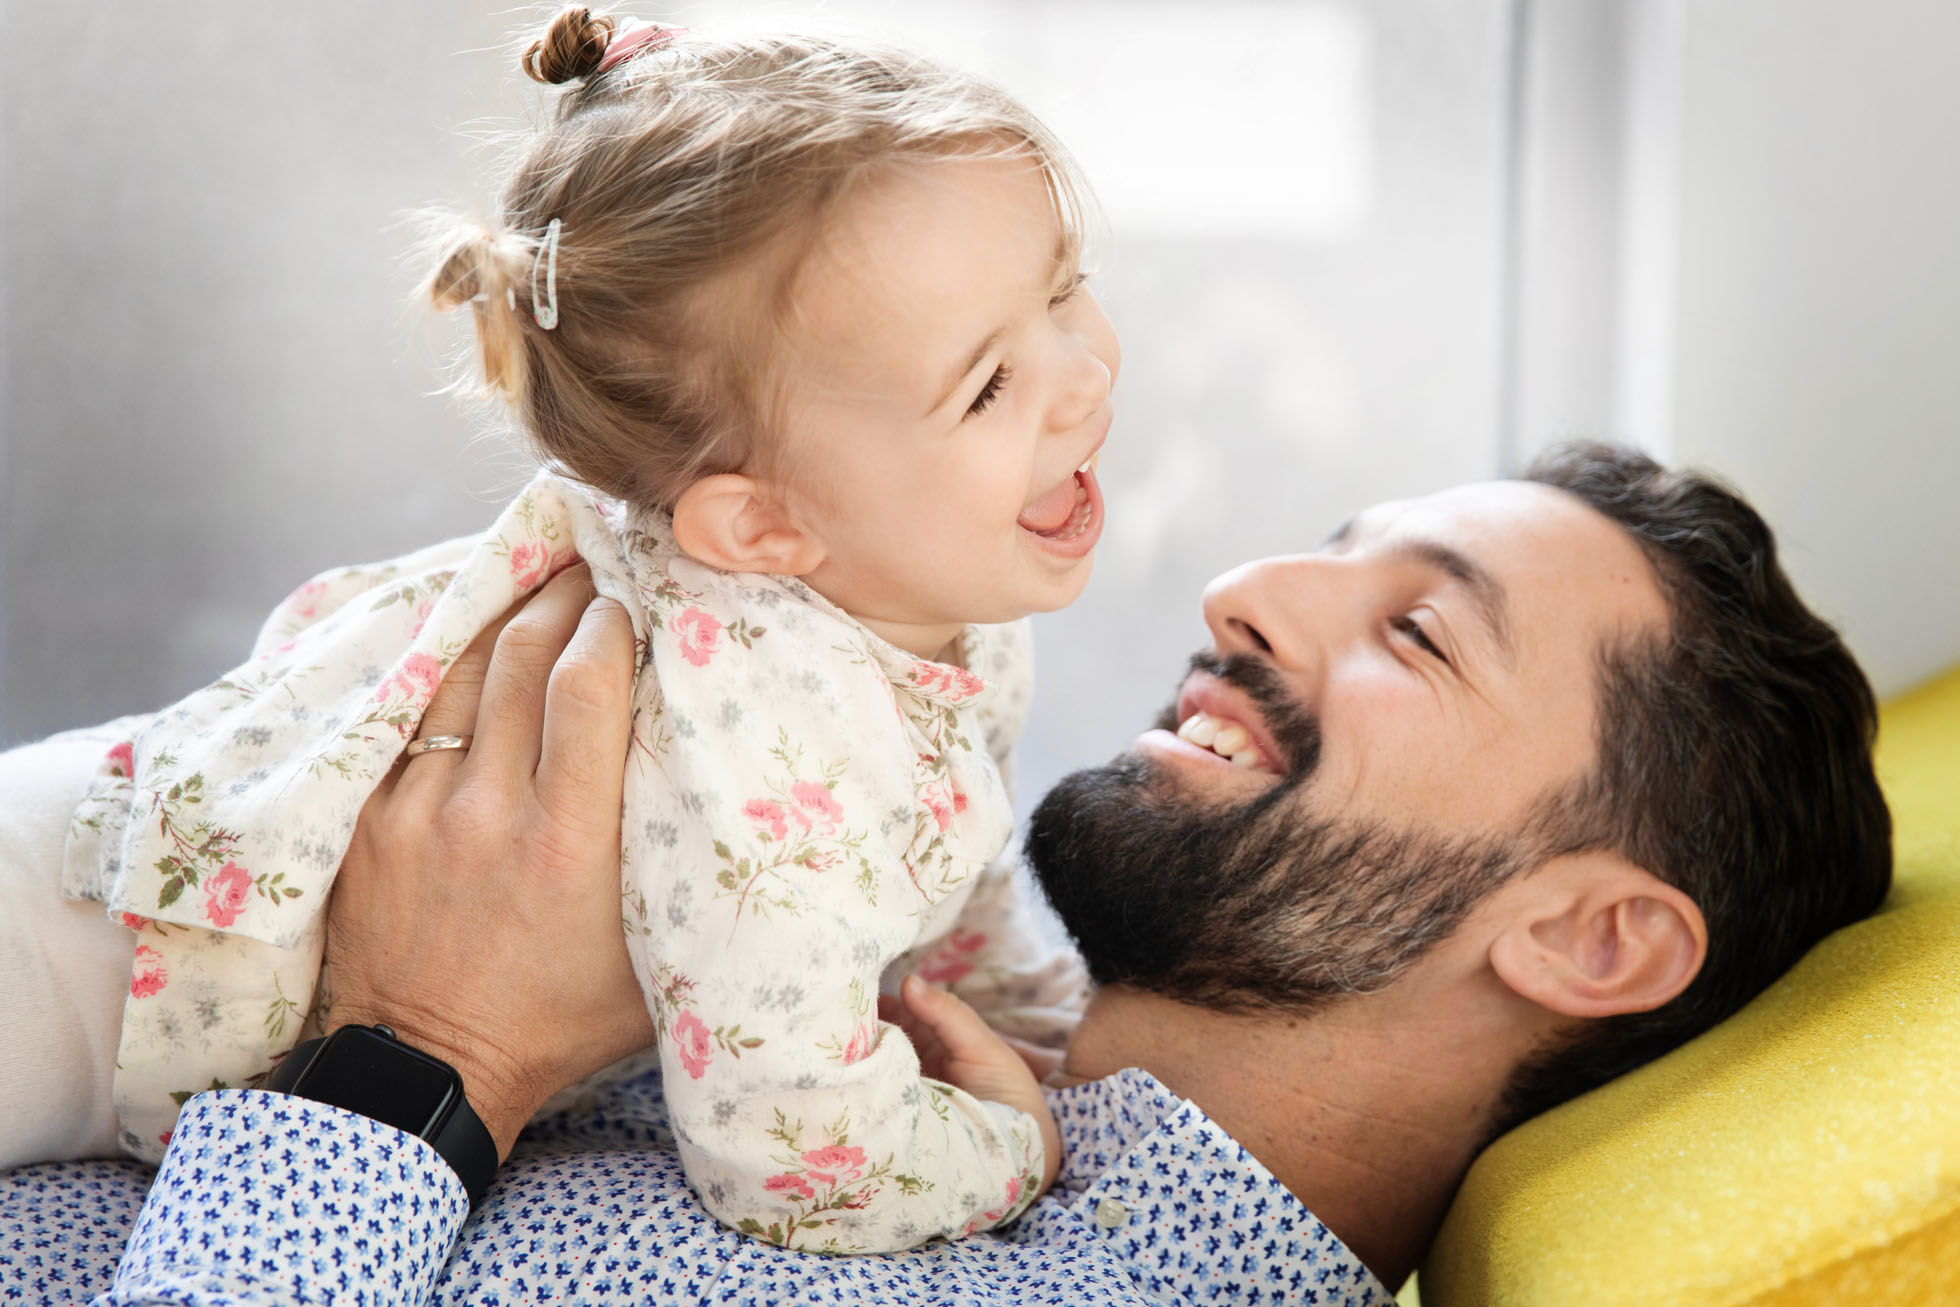 A dad holds his laughing daughter